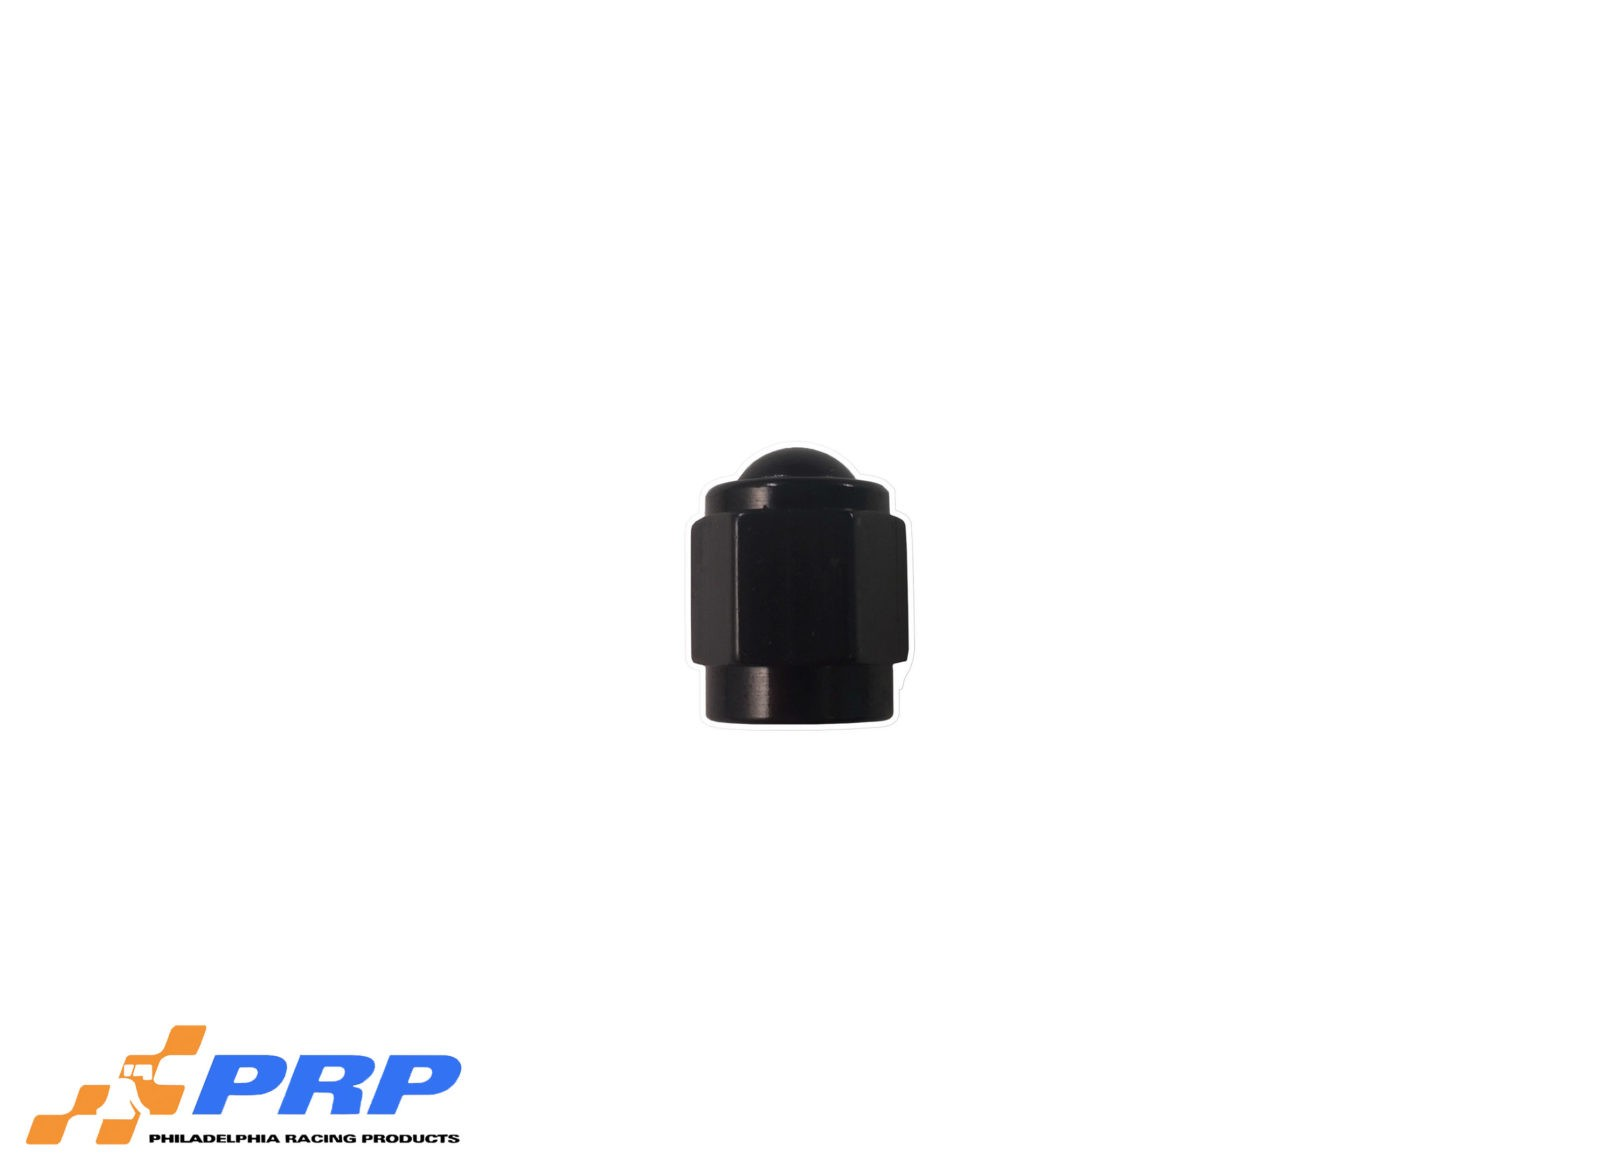 Black Flare Caps - 3-AN made by PRP Racing Products